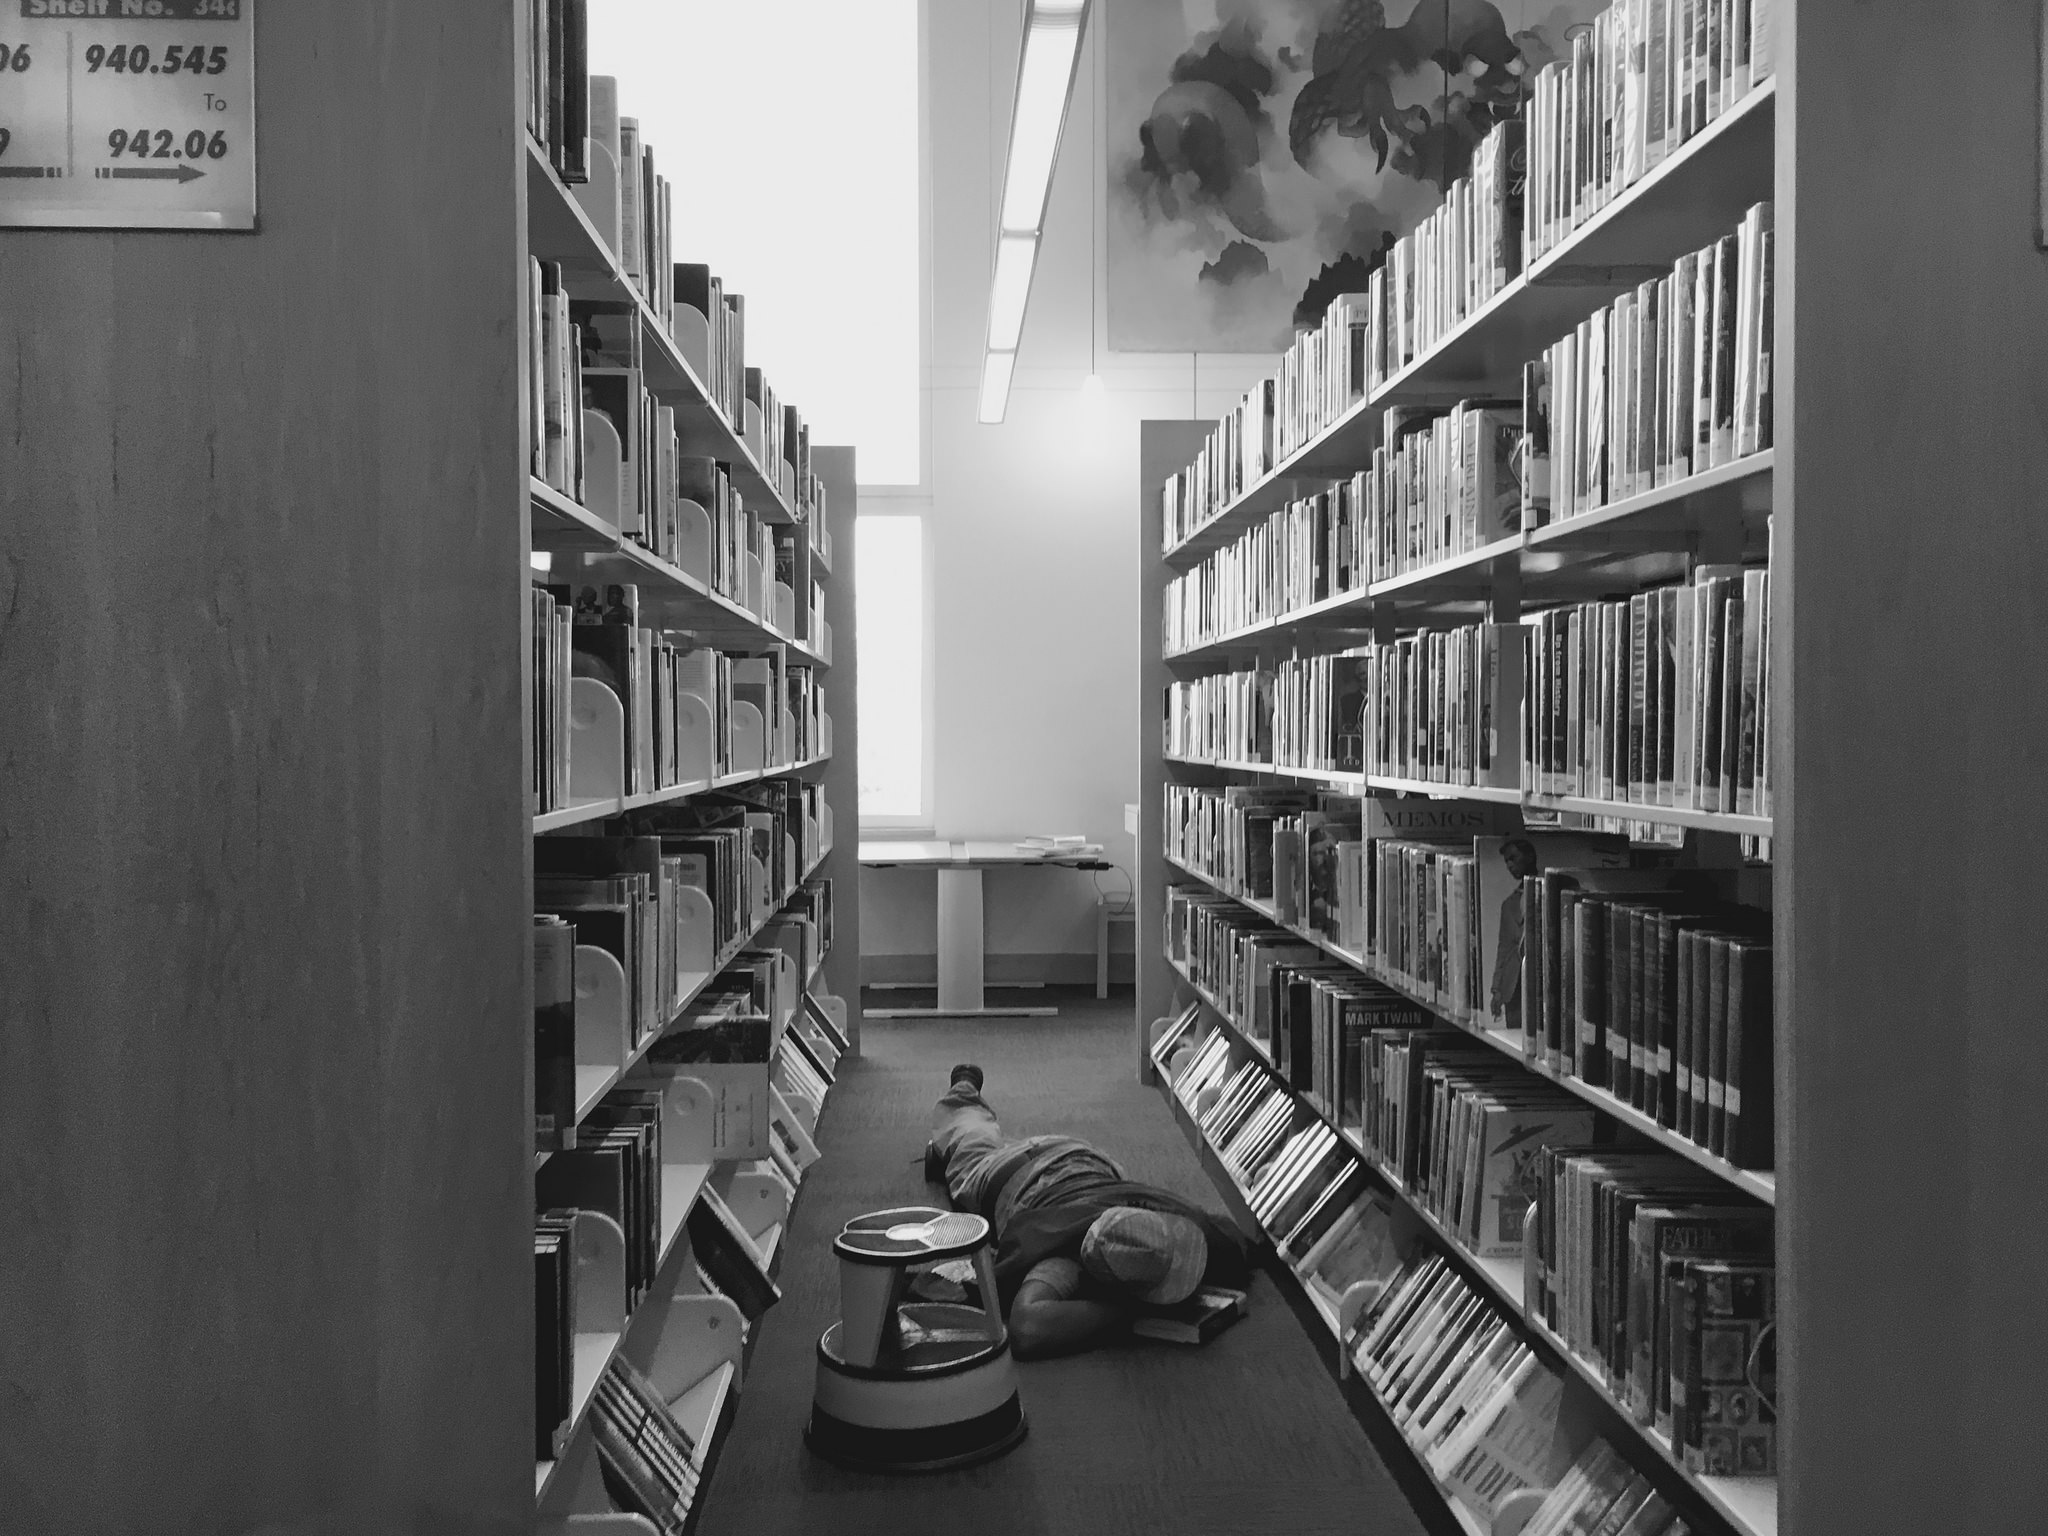 Top productivity hack: sleep in the library.